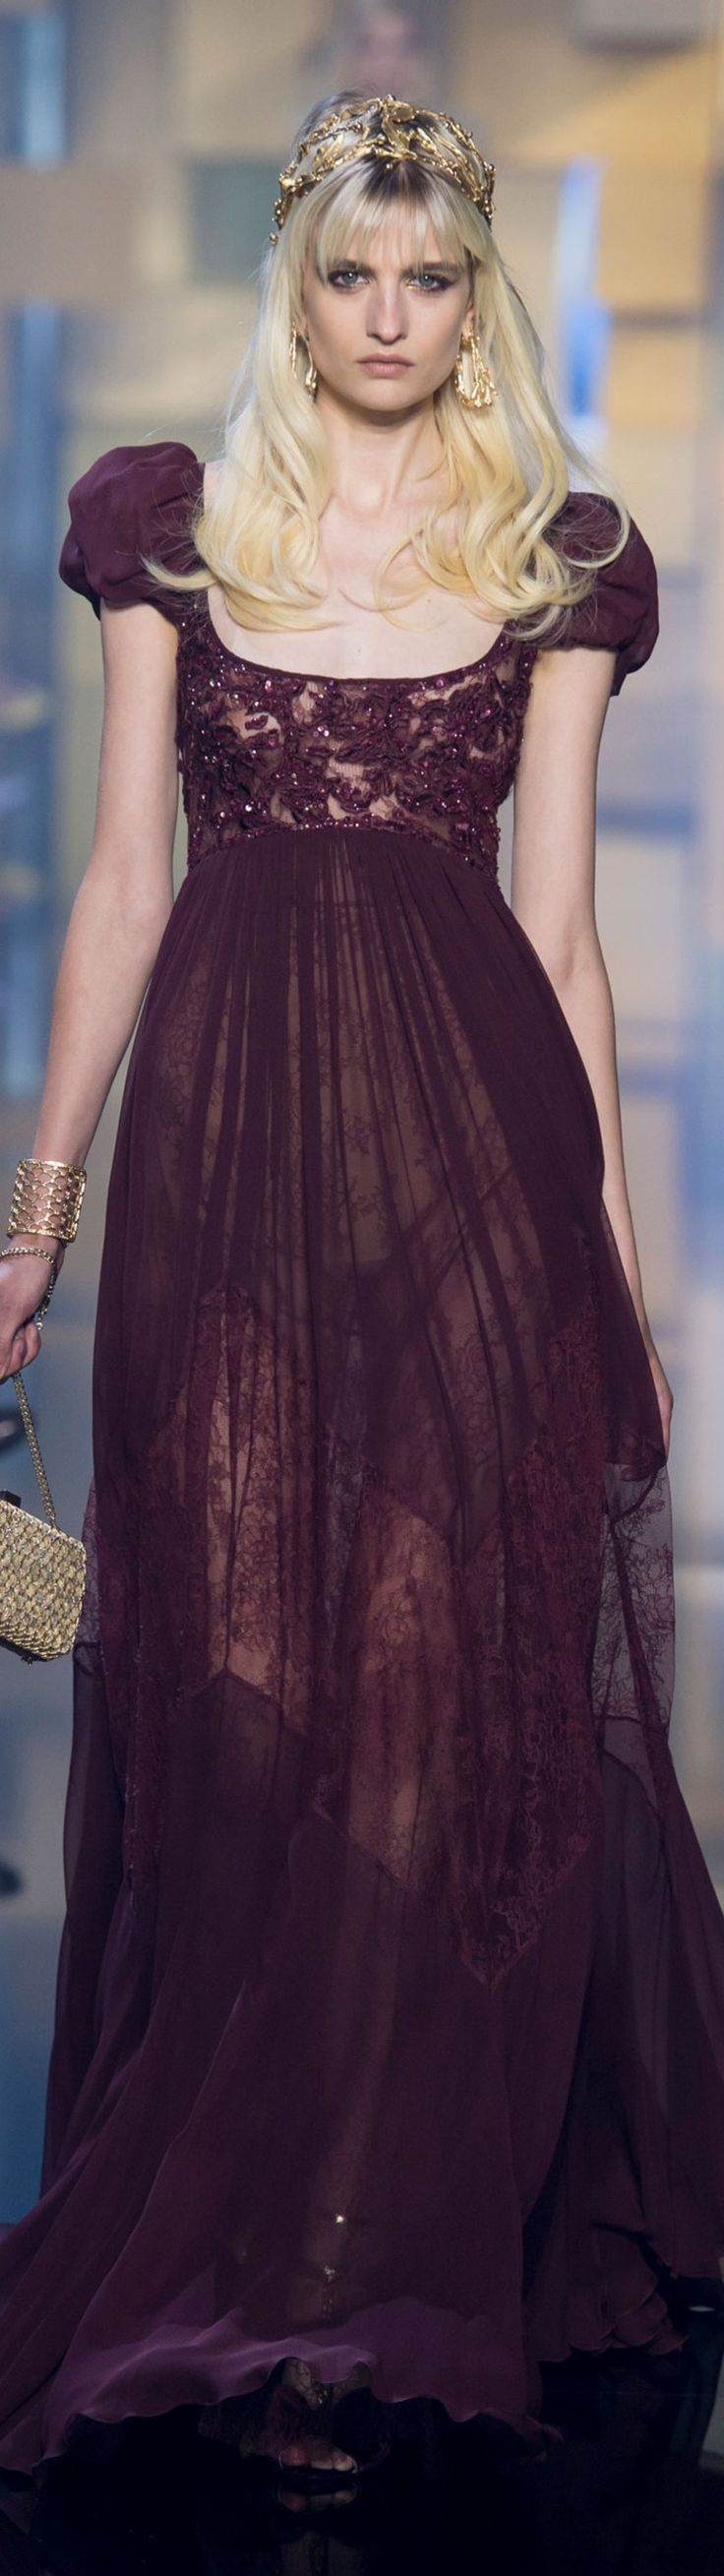 Again with the see through dress and no slip? This is a stupid trend among designers.  Love this dress, but a slip is in order.